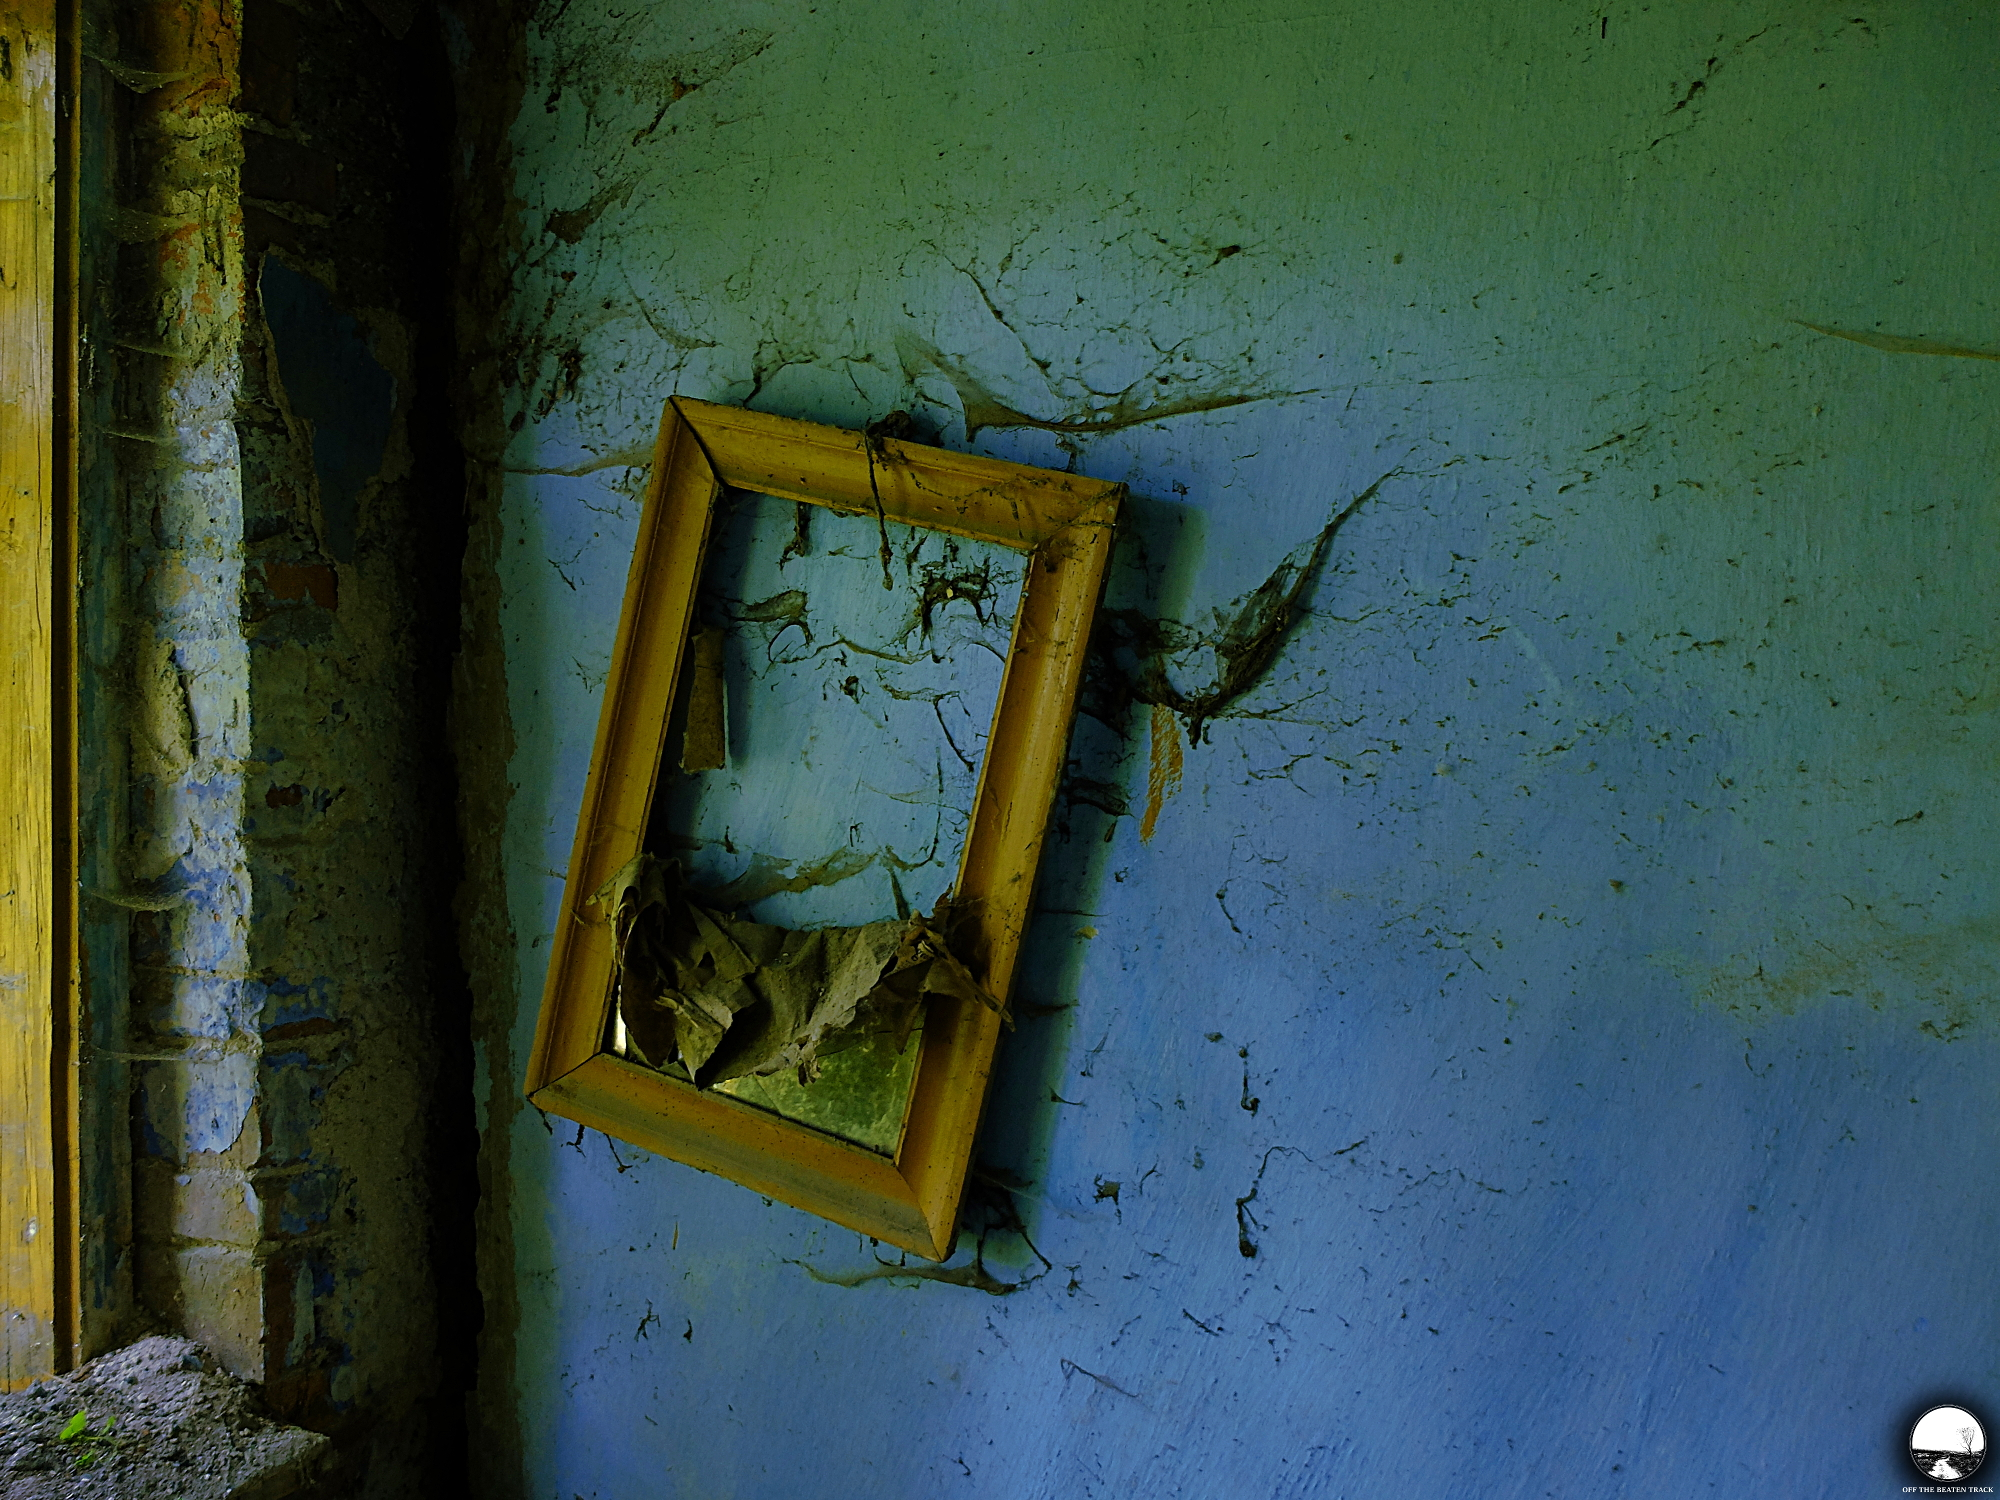 The Abandoned House 'What the Vines Are Hiding' (Poland) - 3.jpg